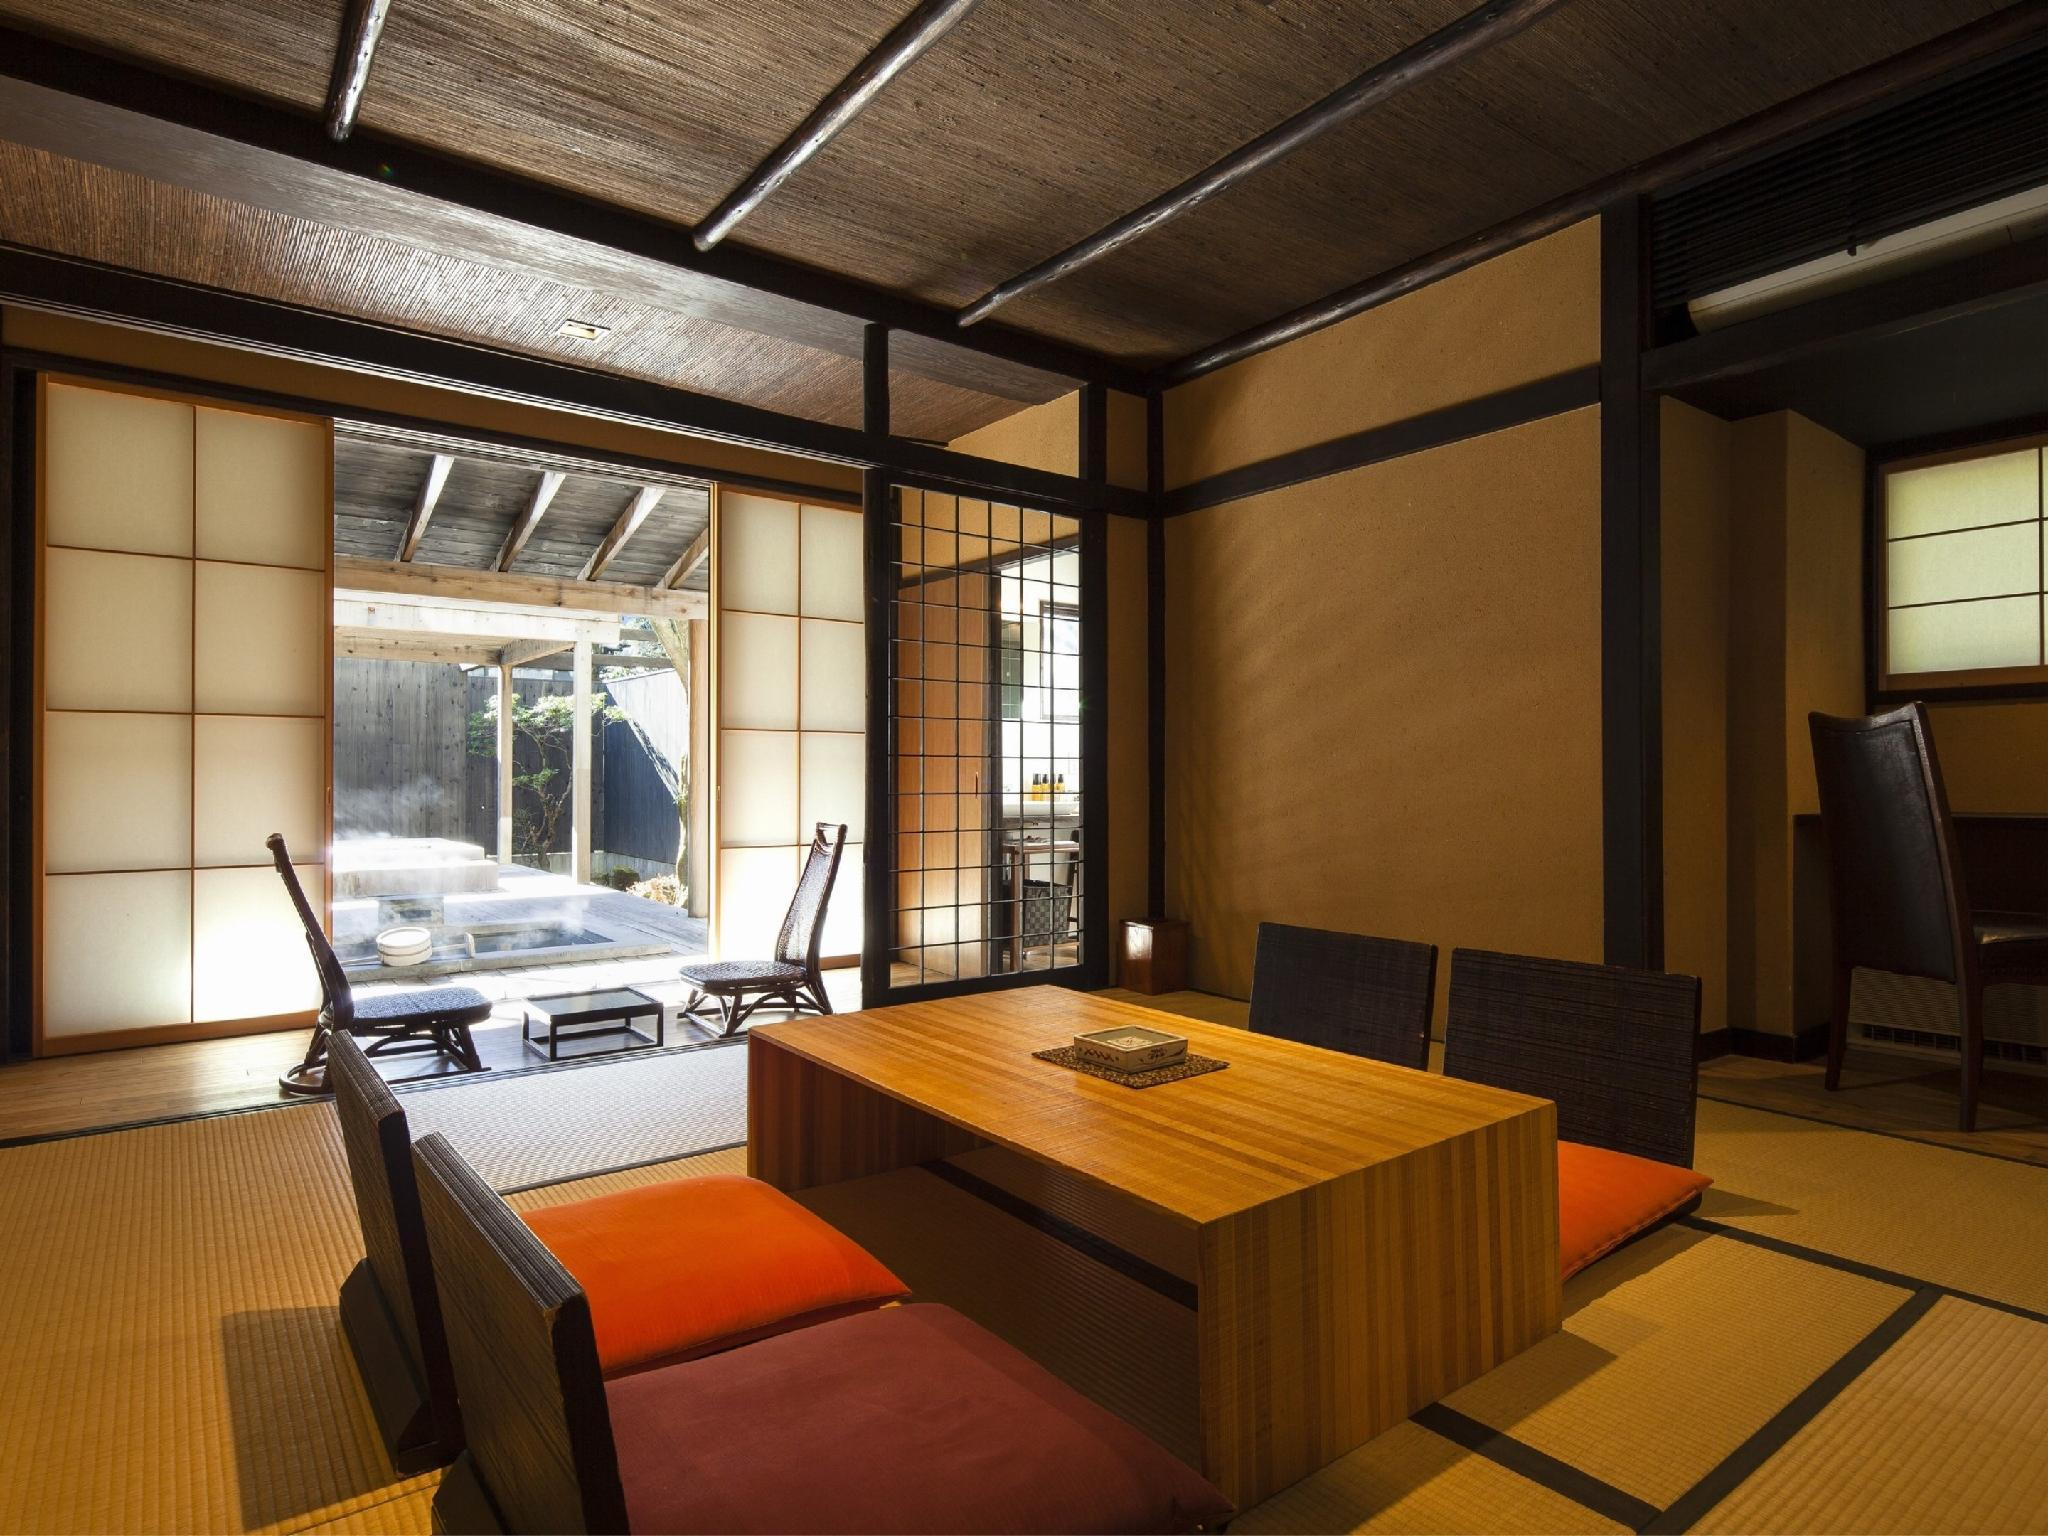 복층형 객실(ASHIKARISO/노천탕+족욕탕) (Maisonette with Open-air Bath + Foot Bath (Ashikariso Wing))